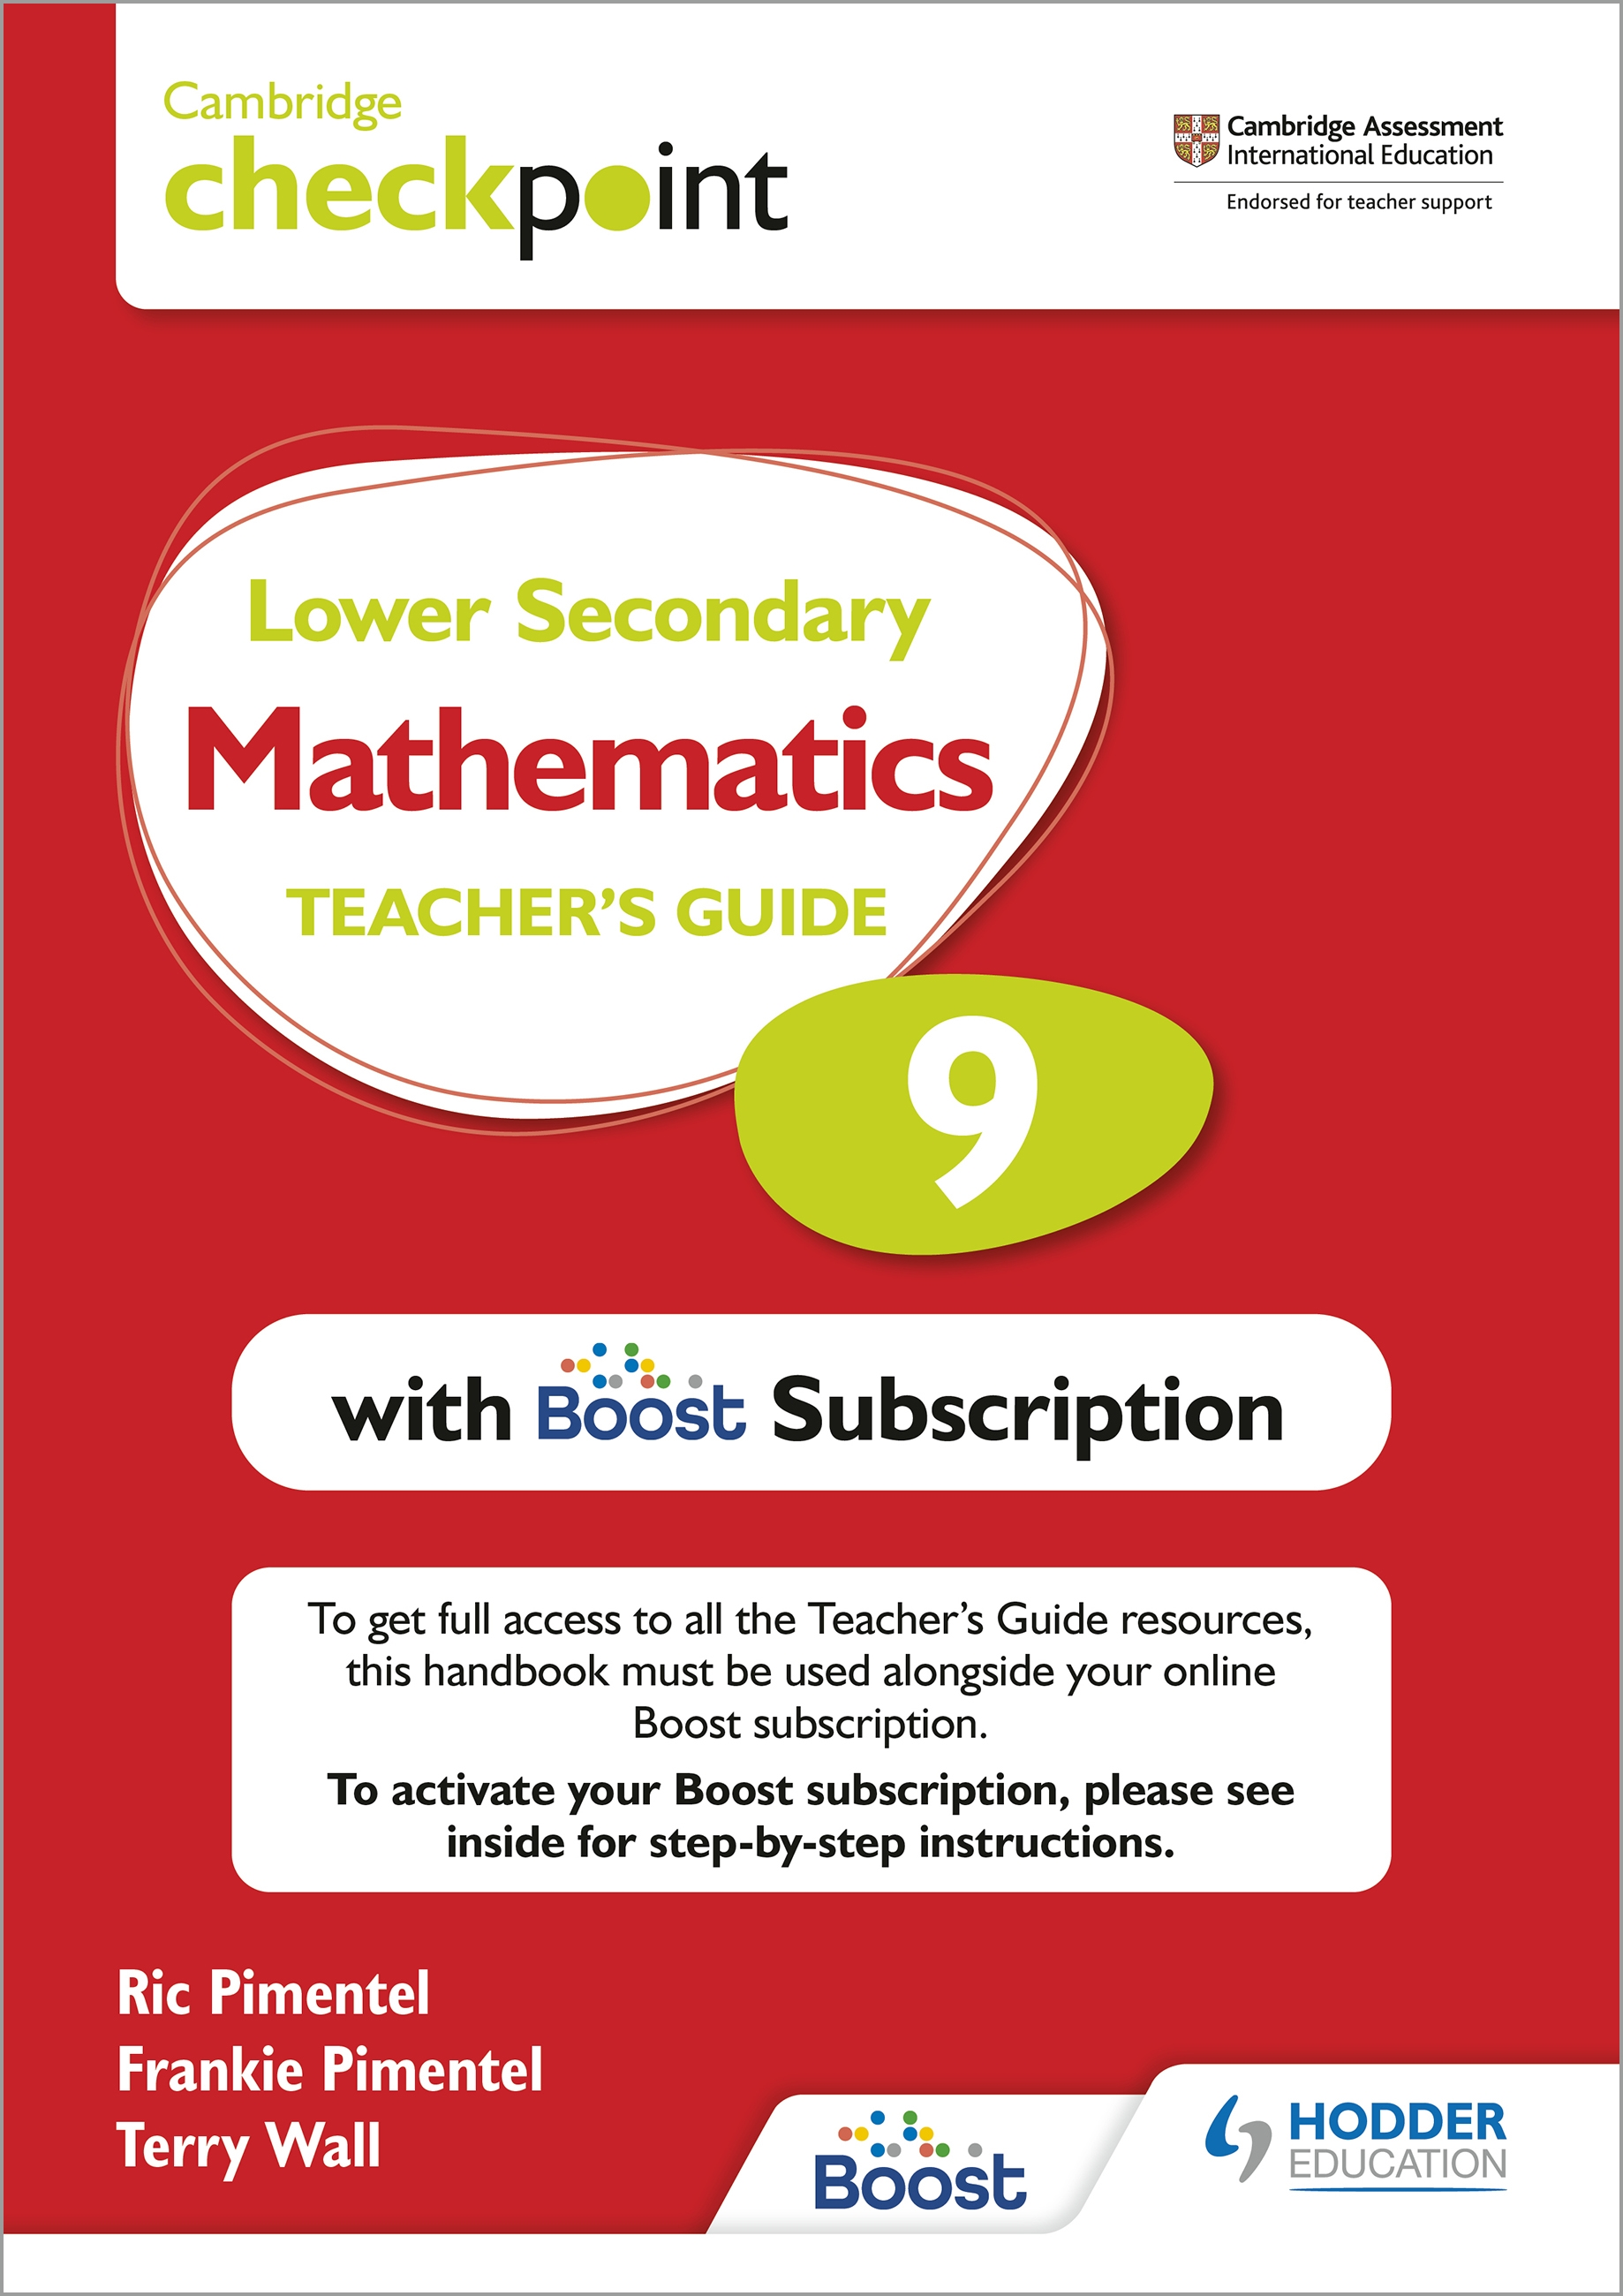 Cambridge Checkpoint Lower Secondary Mathematics Teacher's Guide 9 with Boost Subscription Booklet : Third Edition